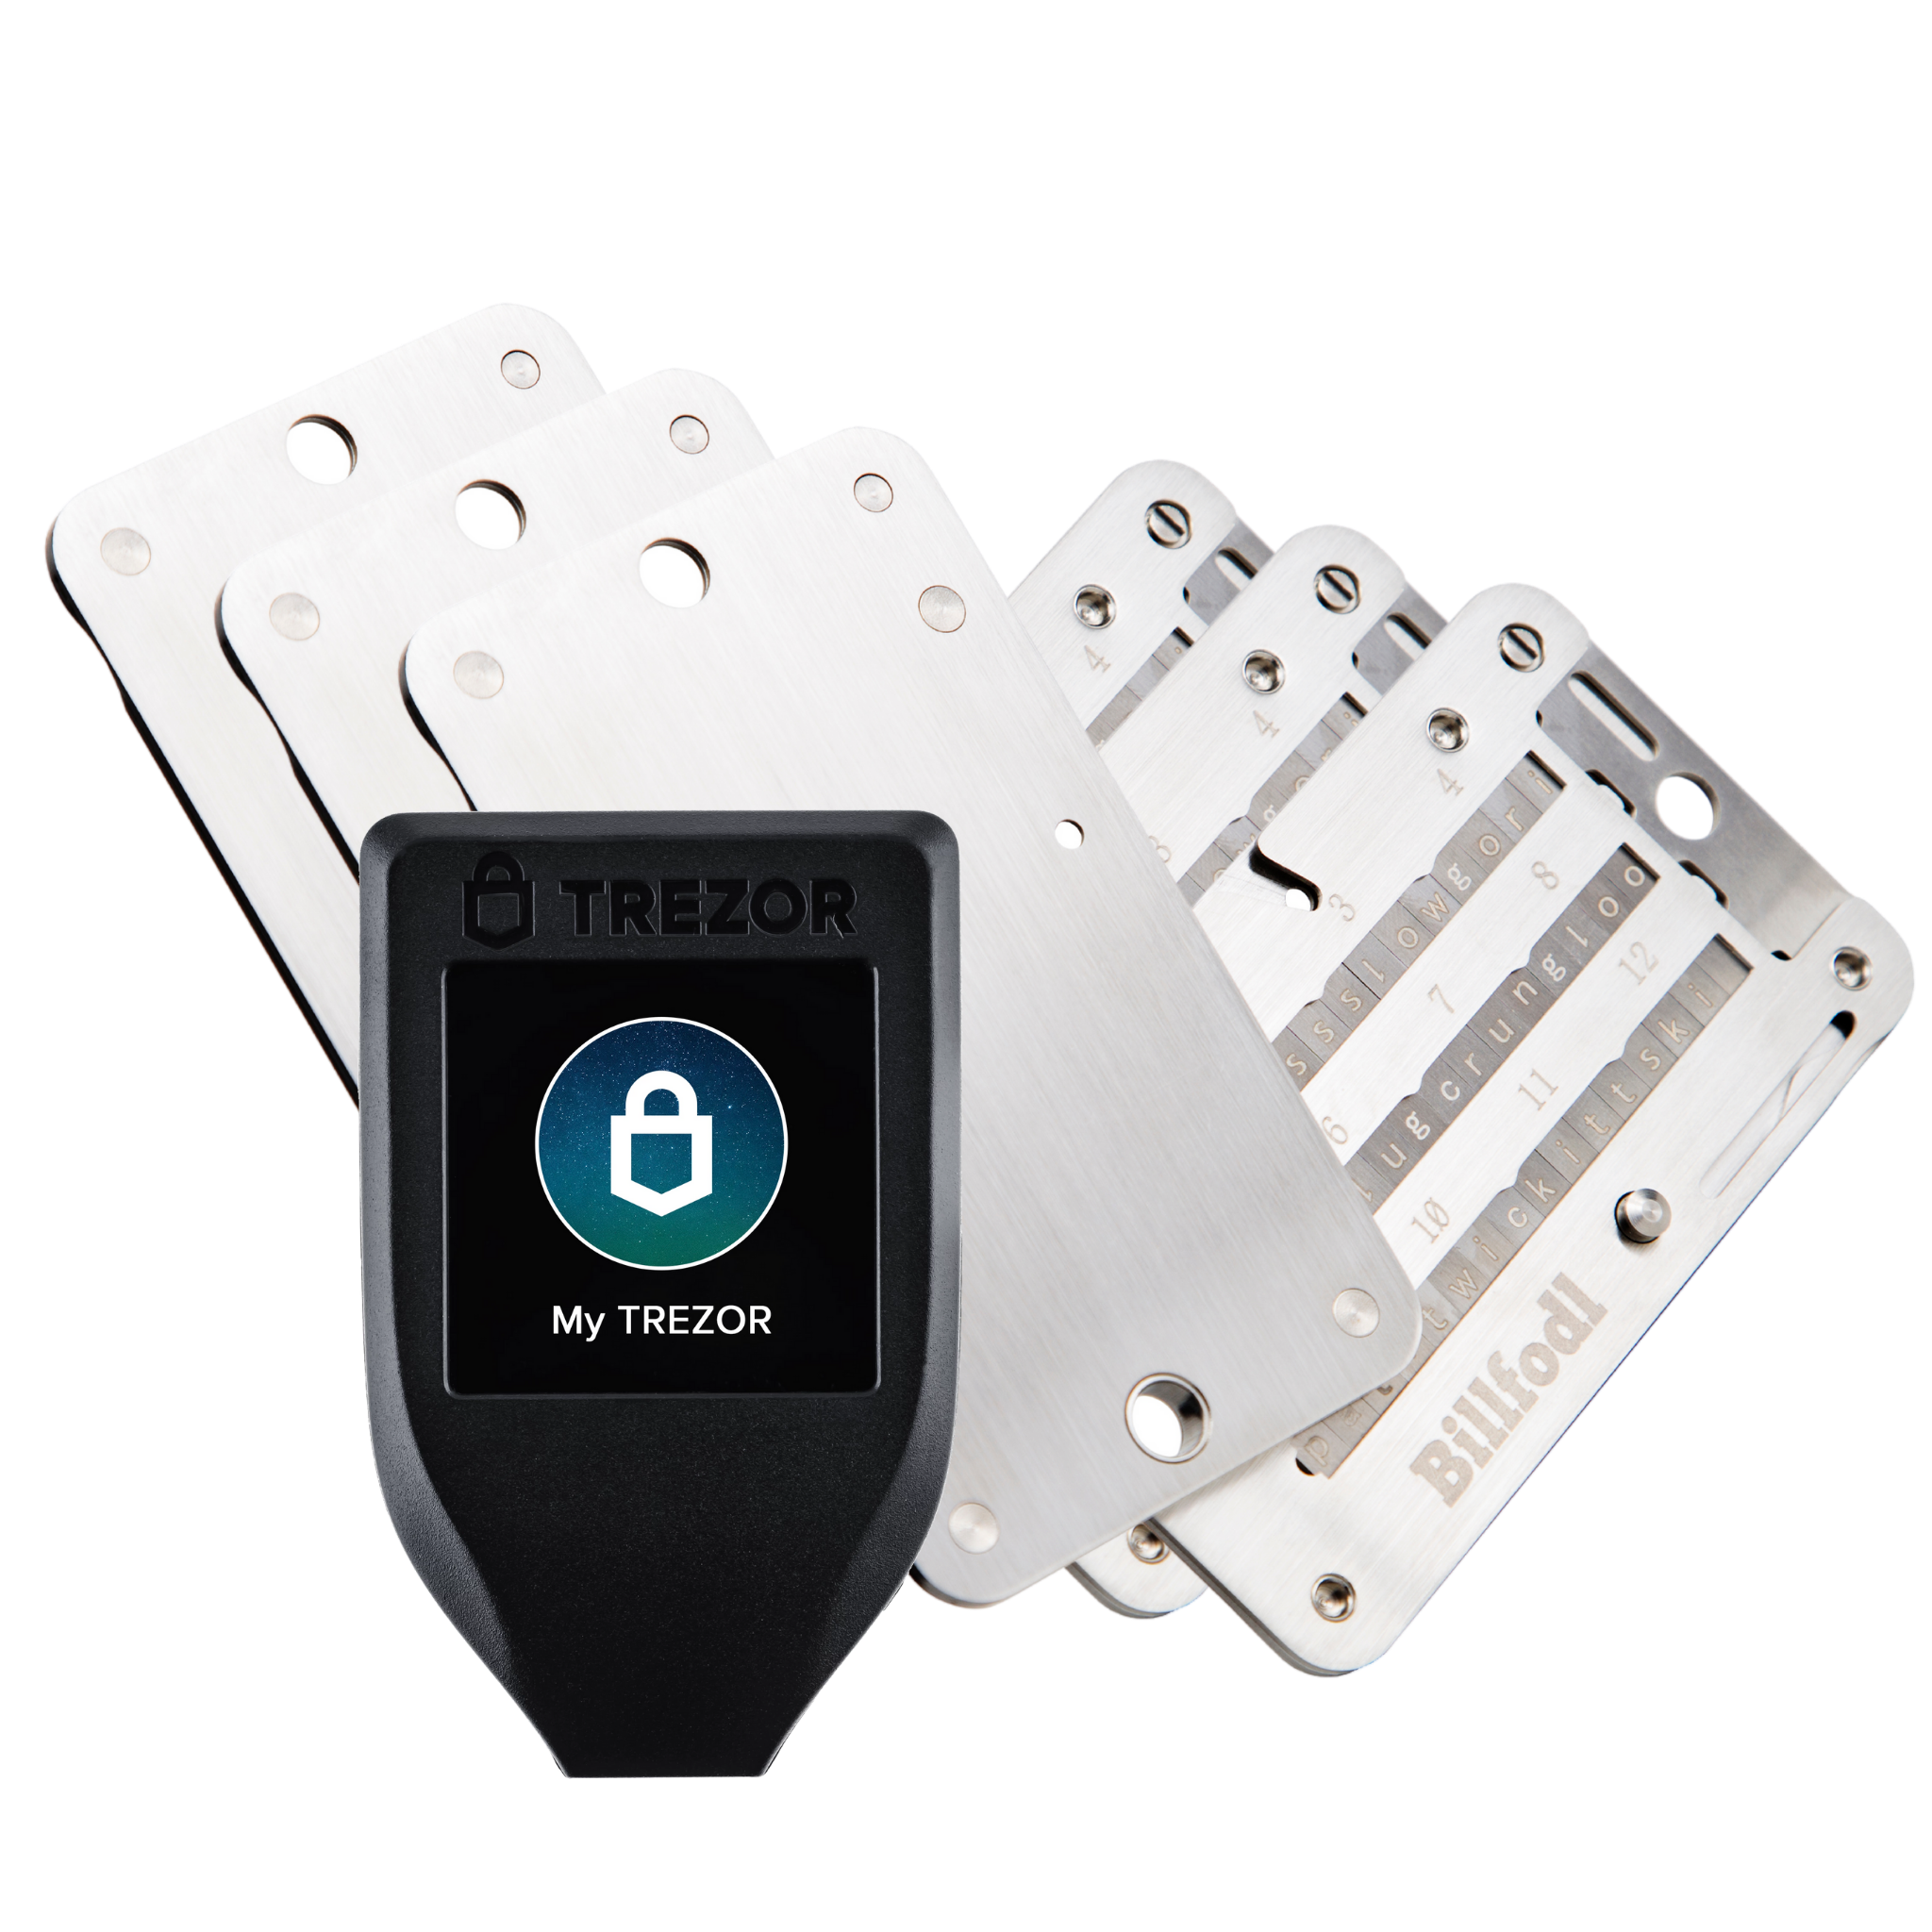 Trezor Model T and 3 Billfodls